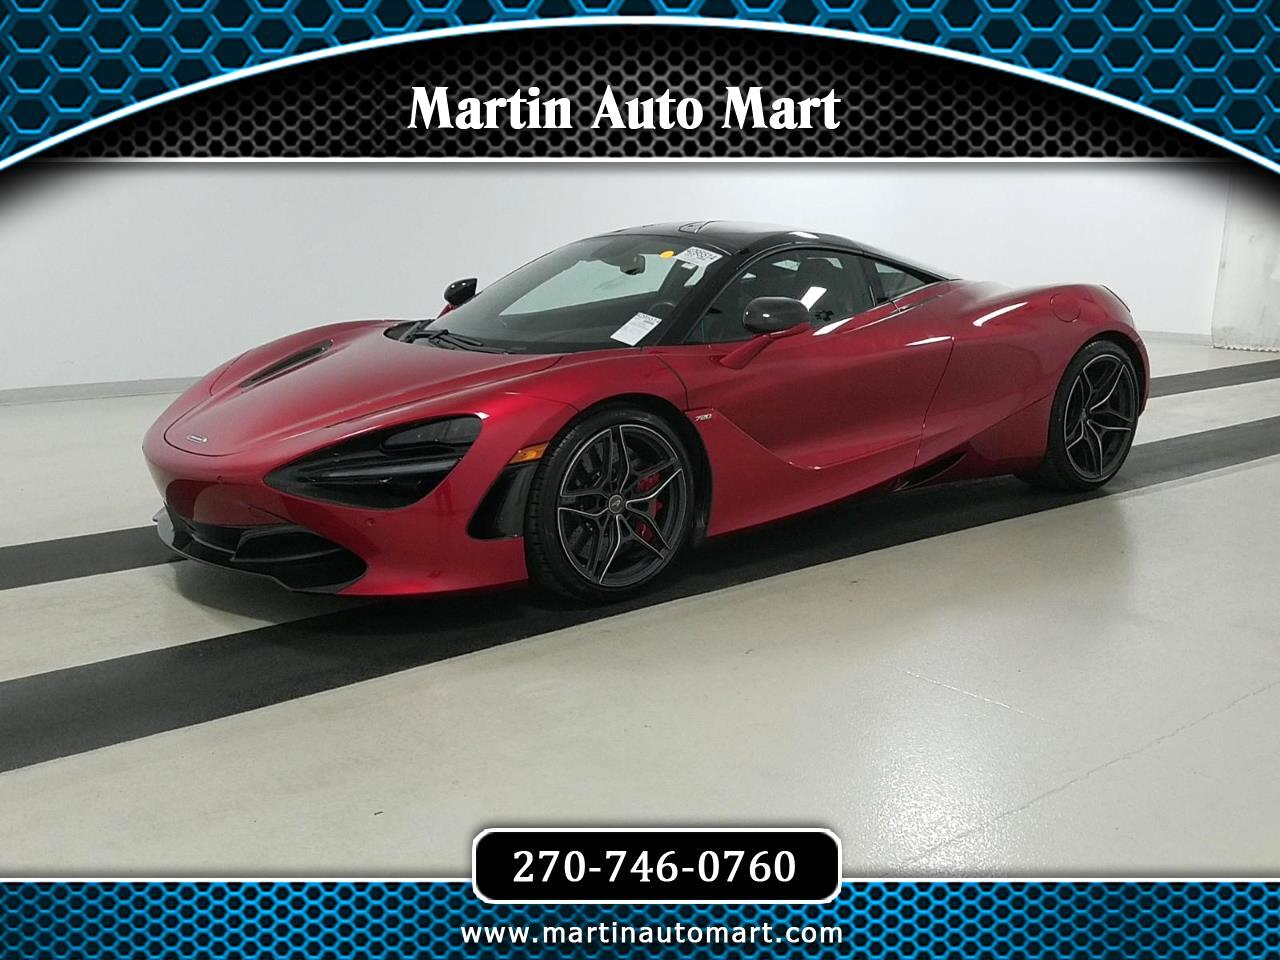 Car Dealerships In Bowling Green Ky >> Used Cars For Sale Bowling Green Ky 42104 Martin Auto Mart